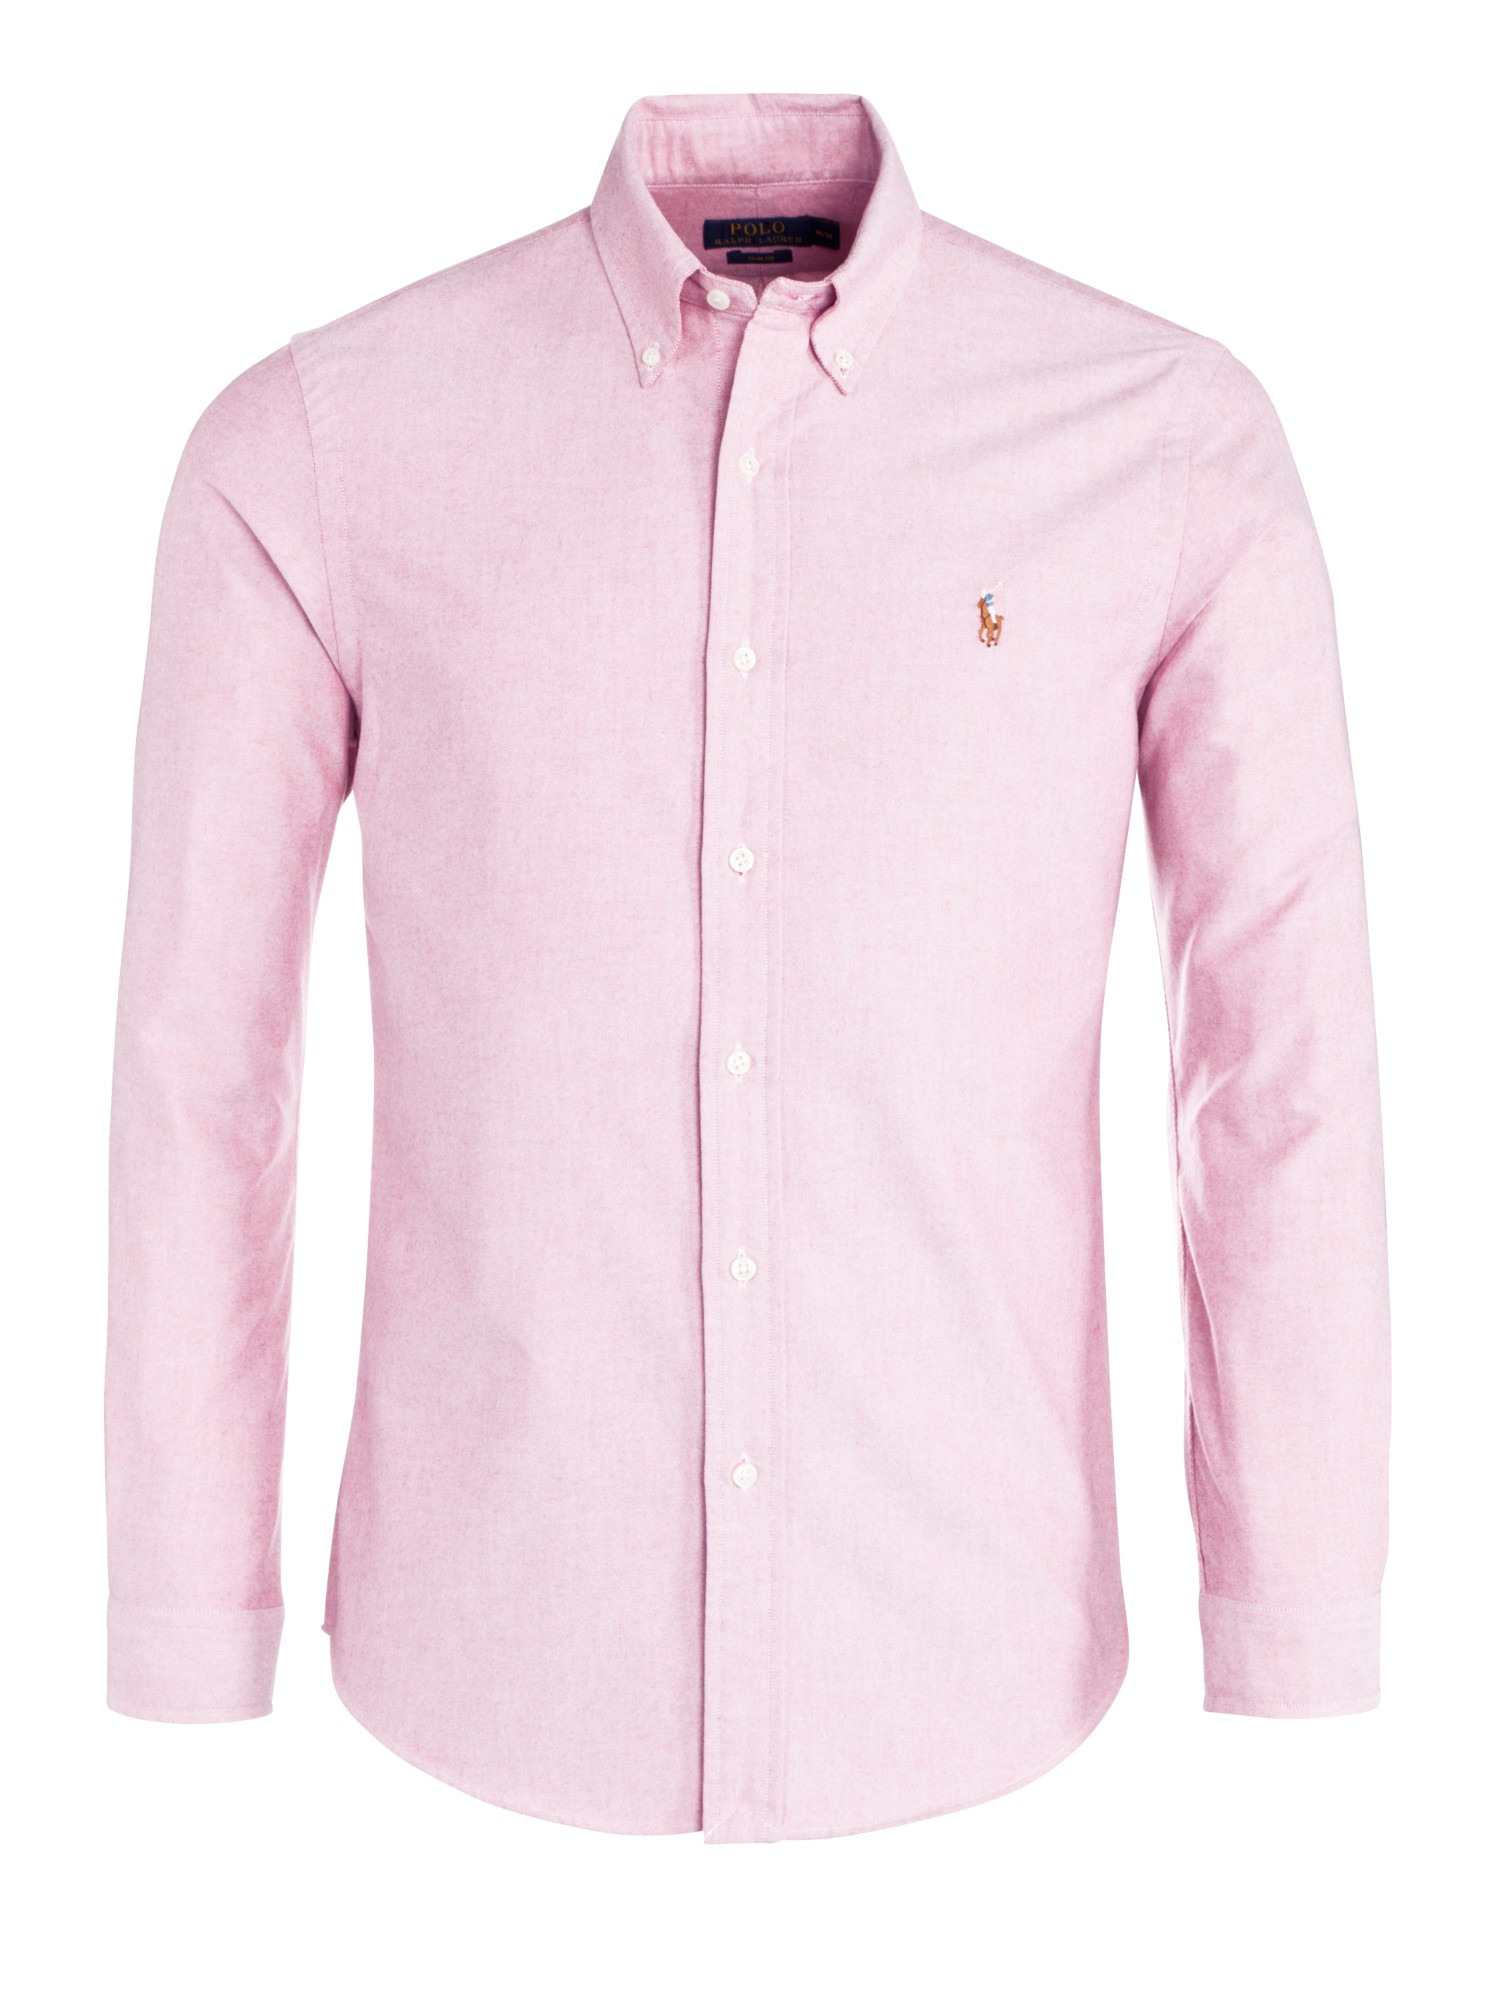 0284539d8 Ralph Lauren Casual Oxford Shirt. Custom Fit in Pink | INTOTO7 Menswear